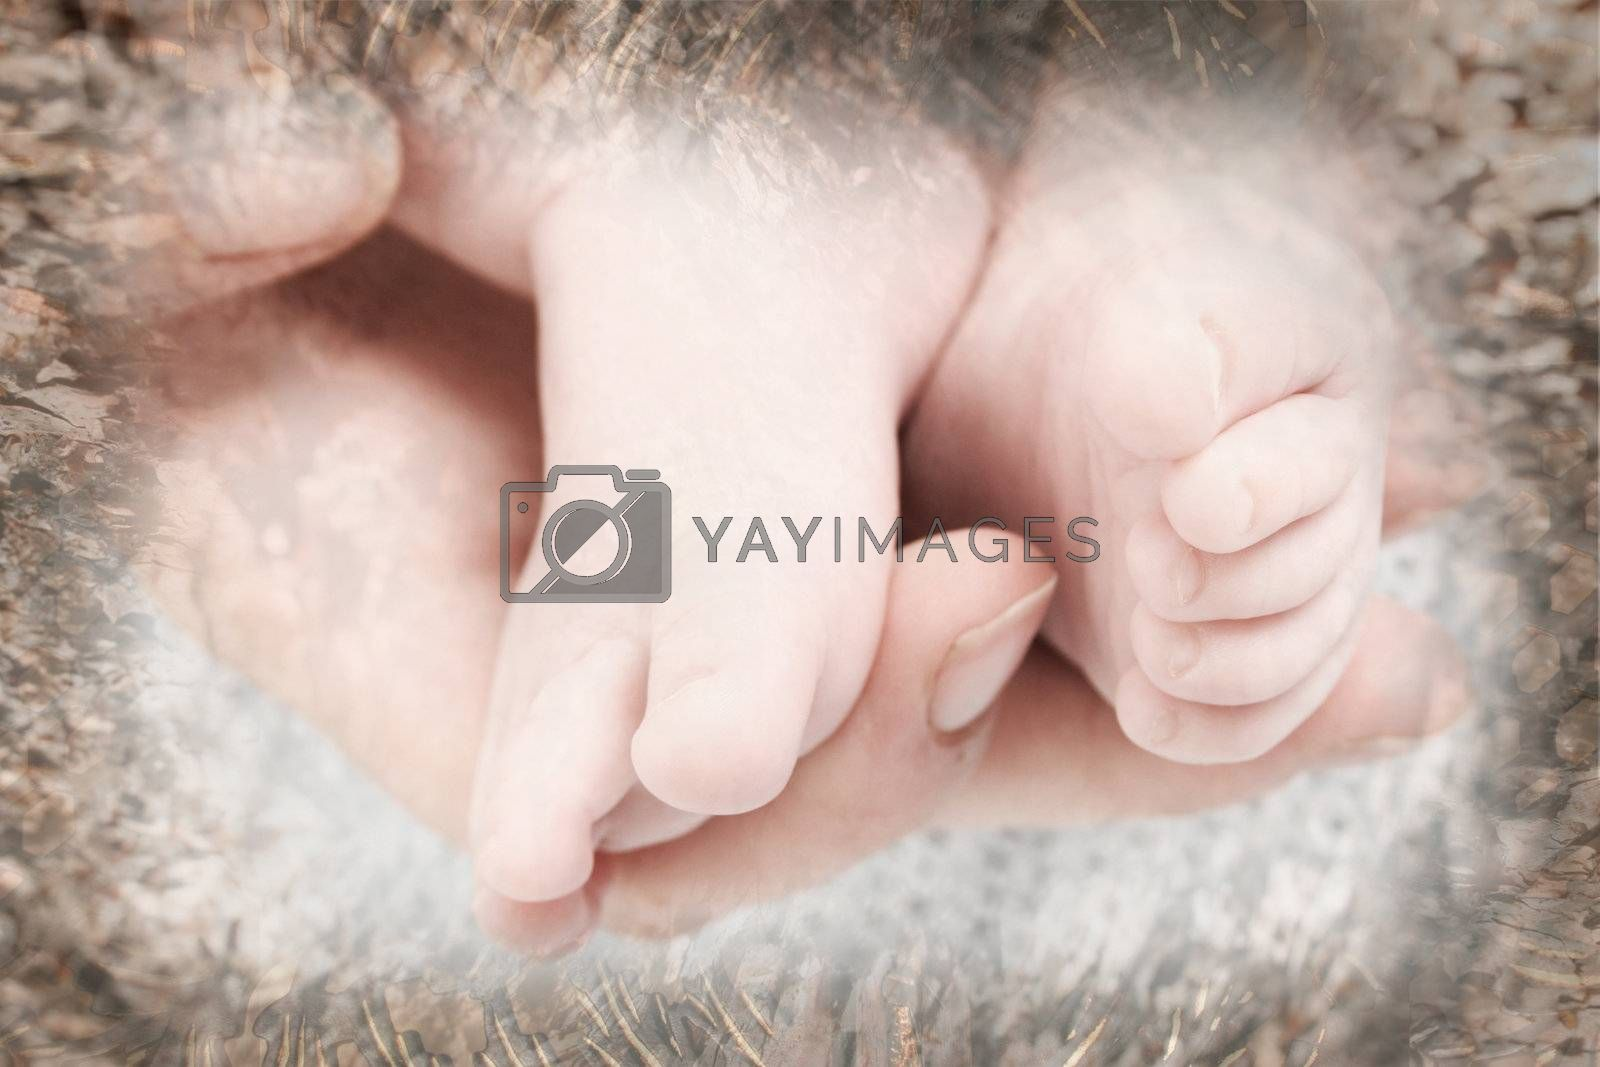 Feet of a baby in his mothers hand